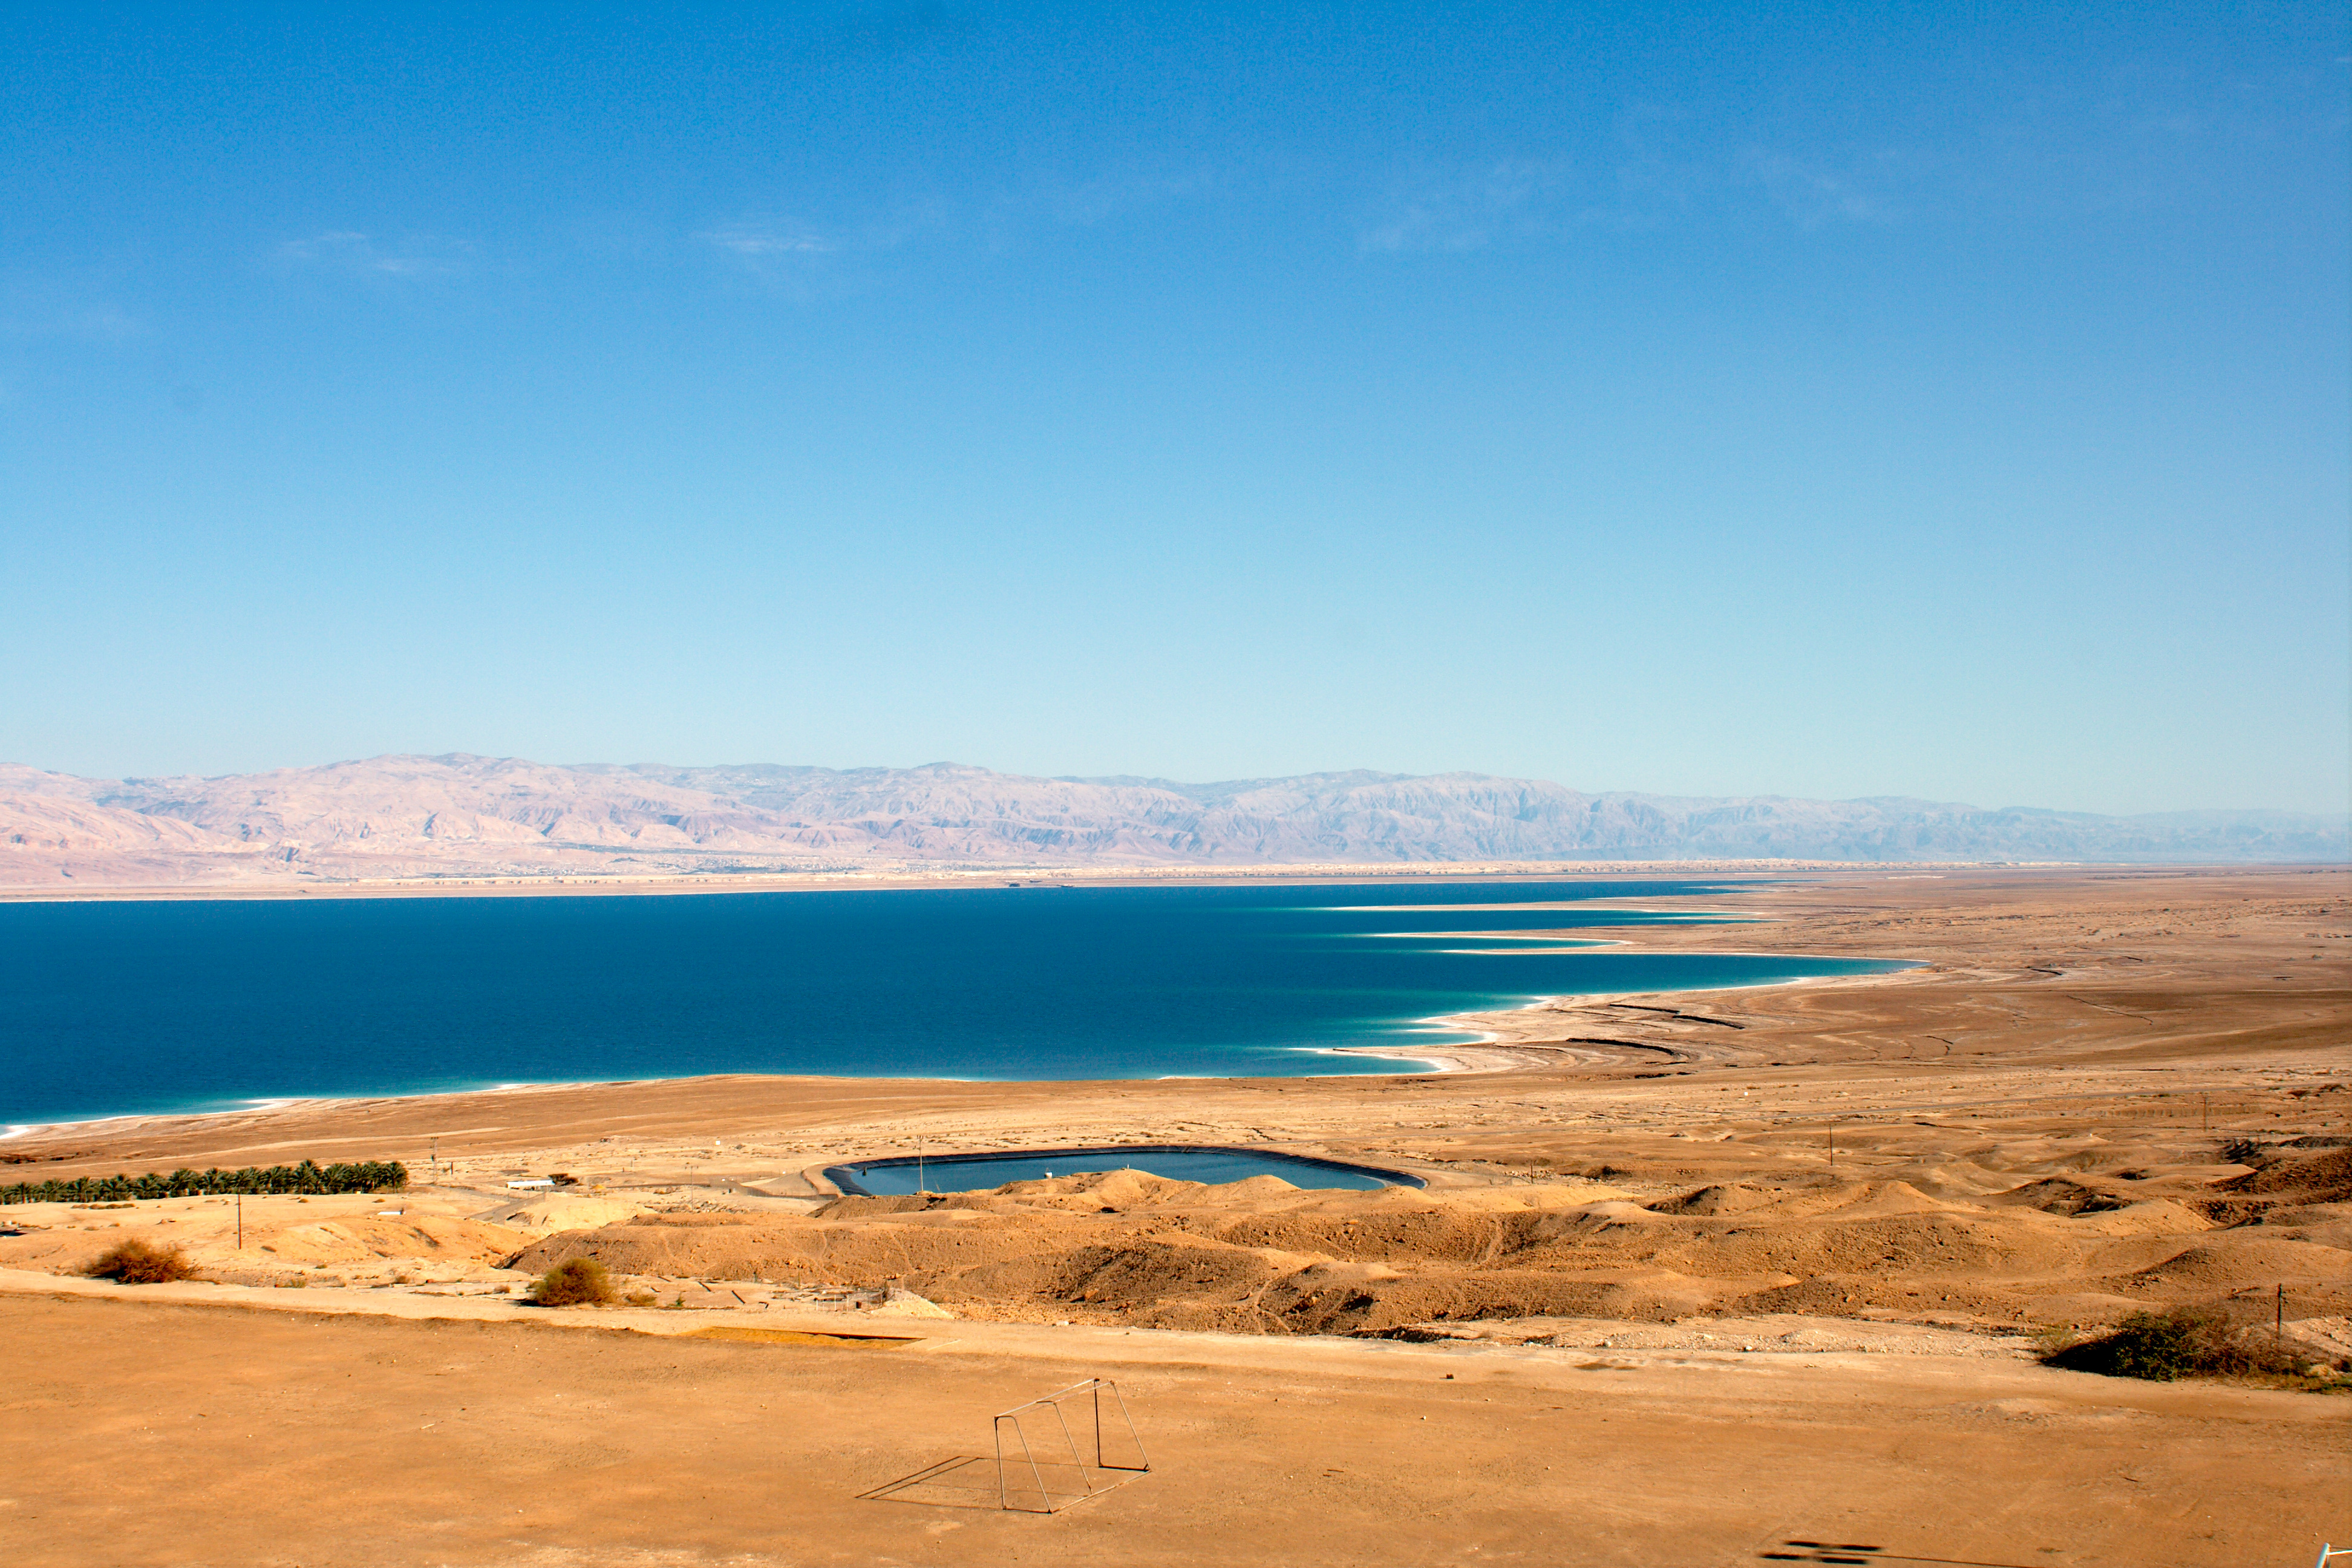 5 Facts about the Dead Sea: Is it dying out? » Roselinde on